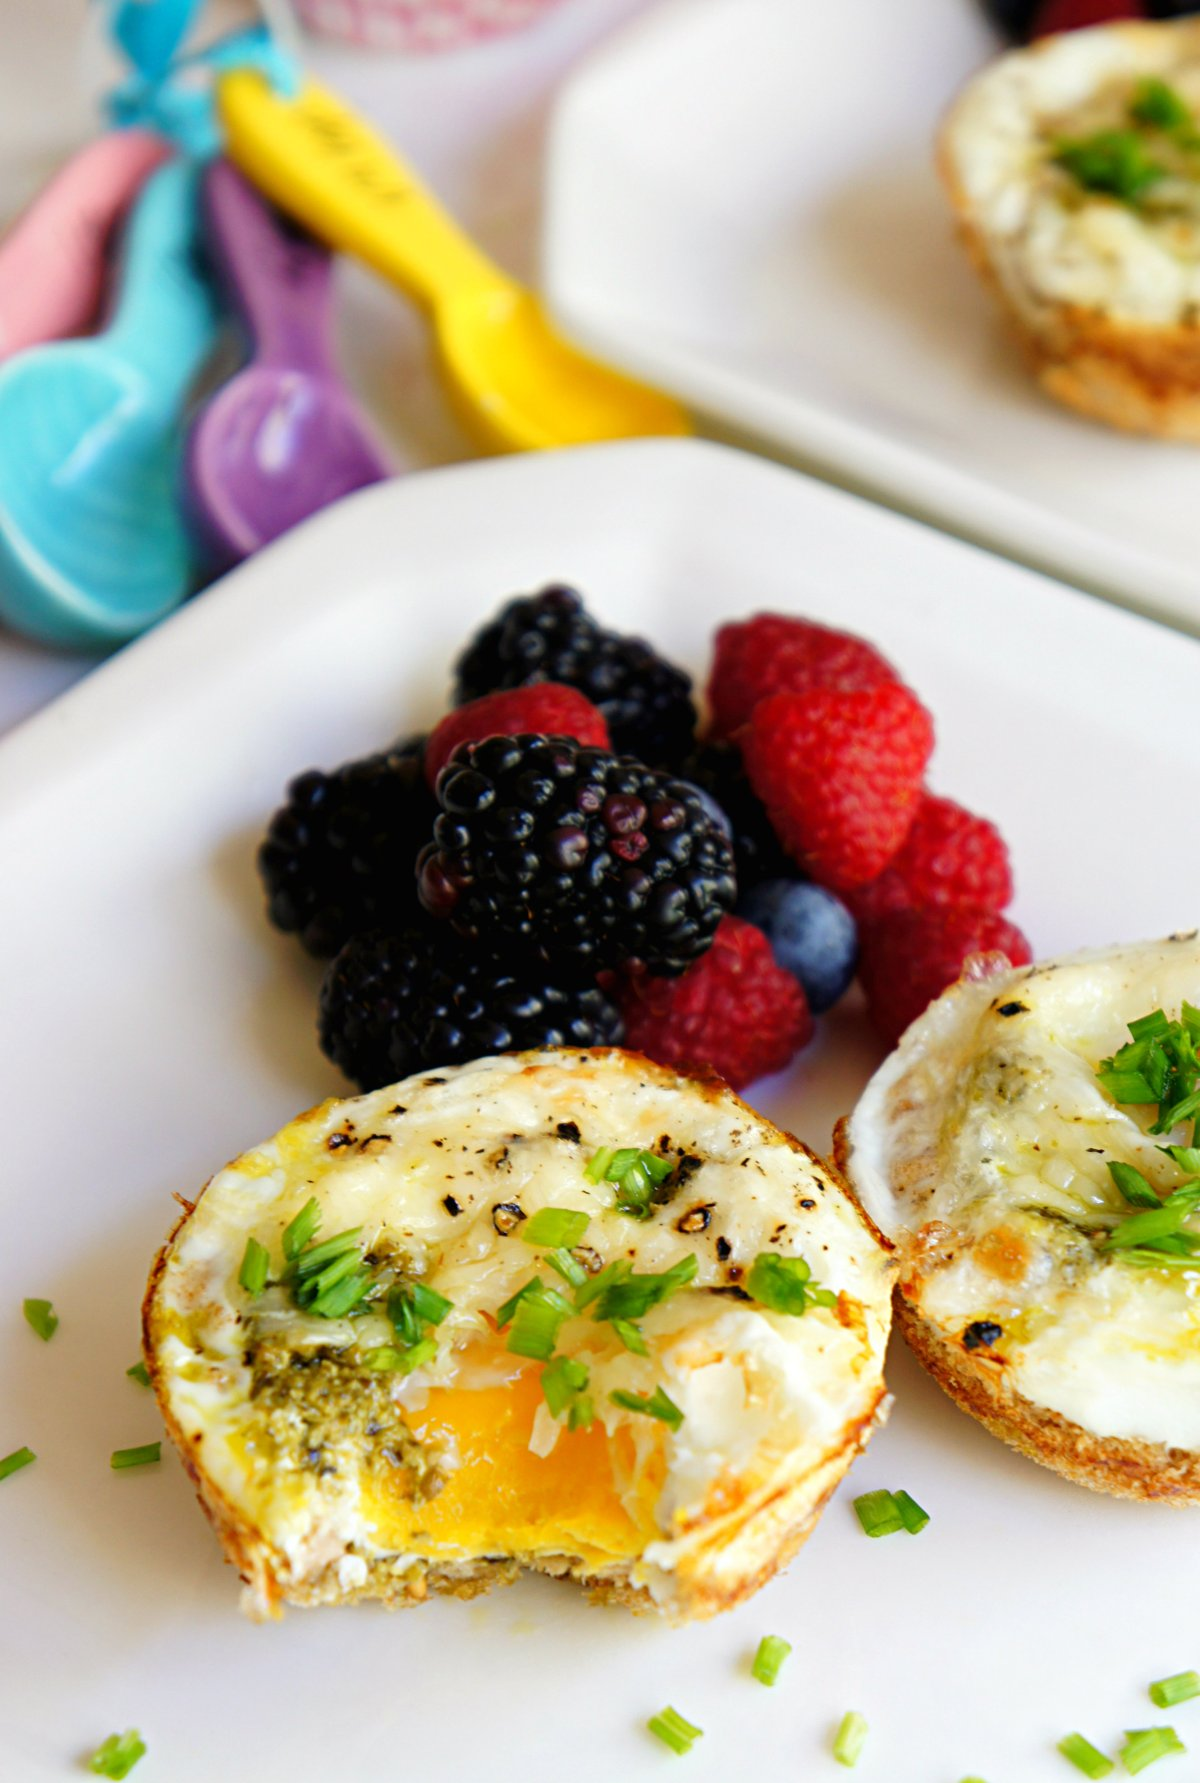 Easter Brunch Ideas: Egg in a Basket